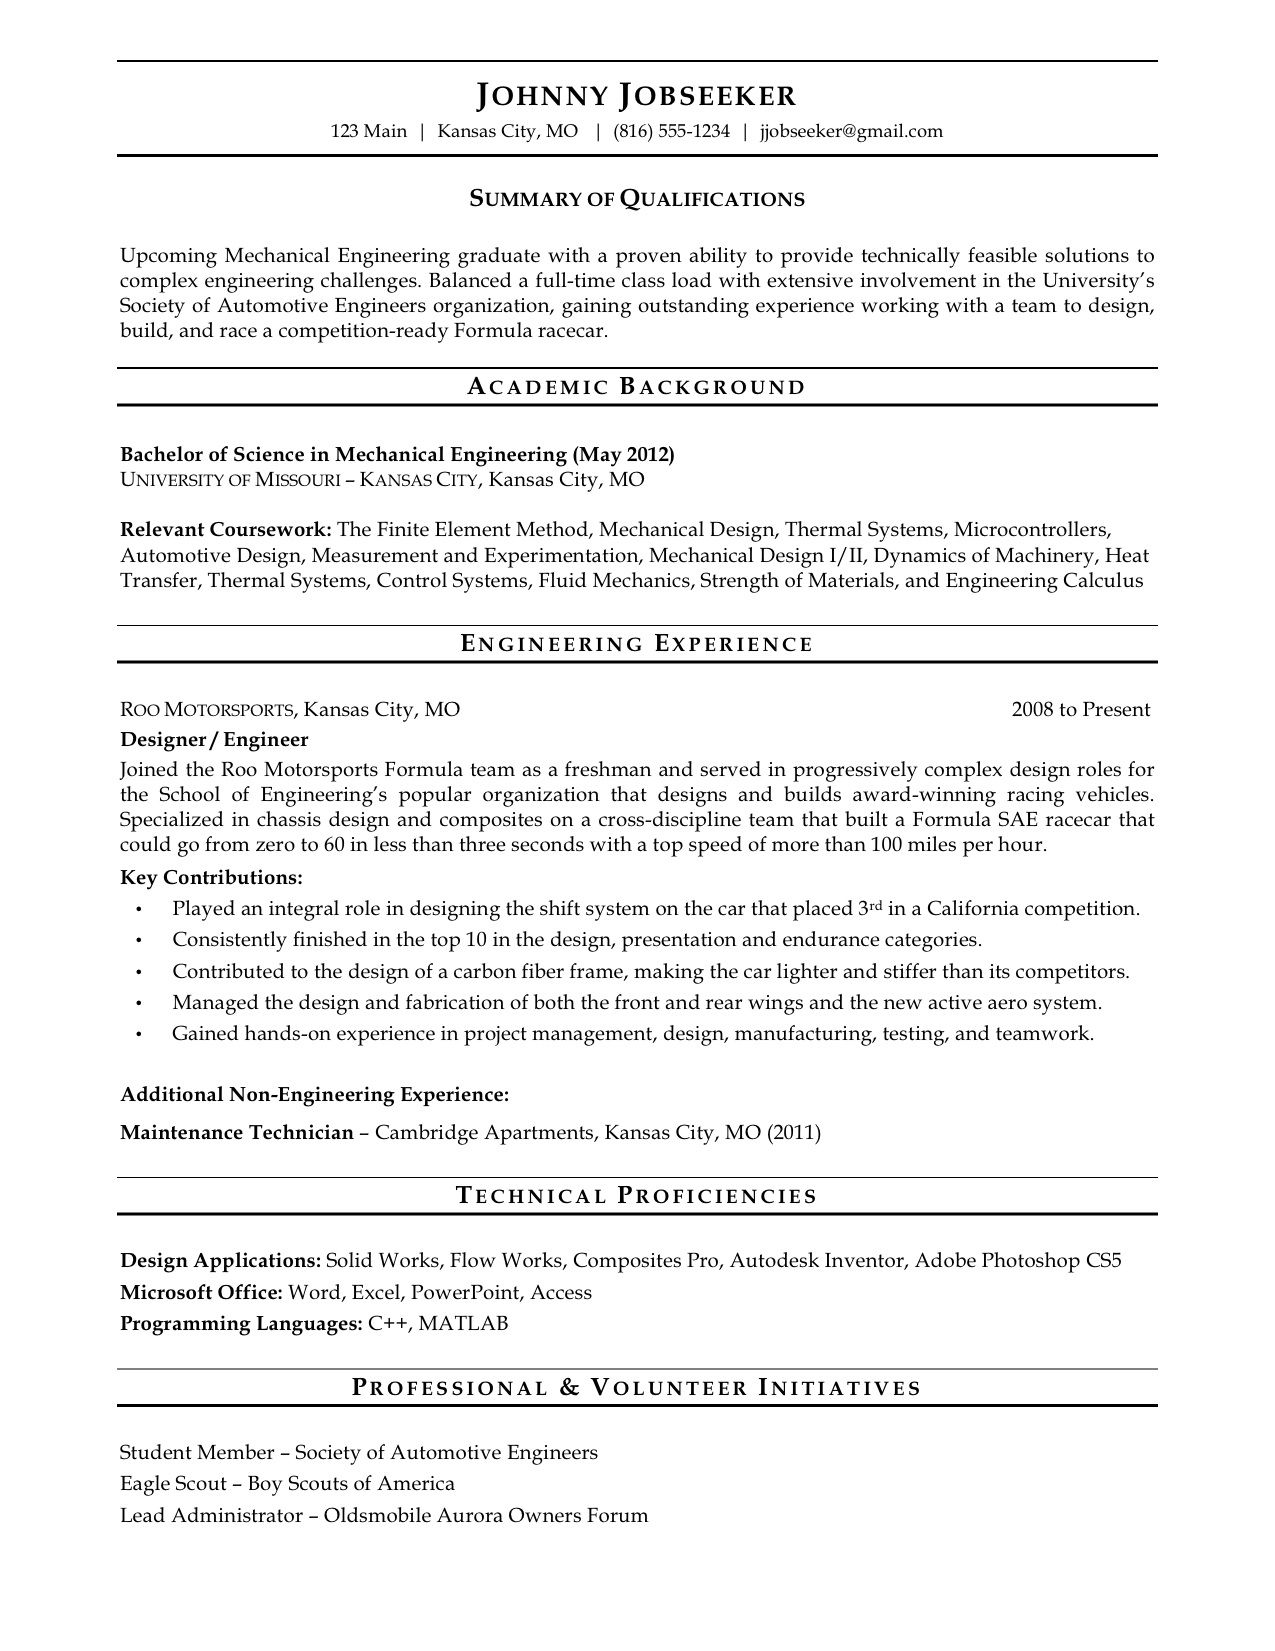 new graduate resume sample